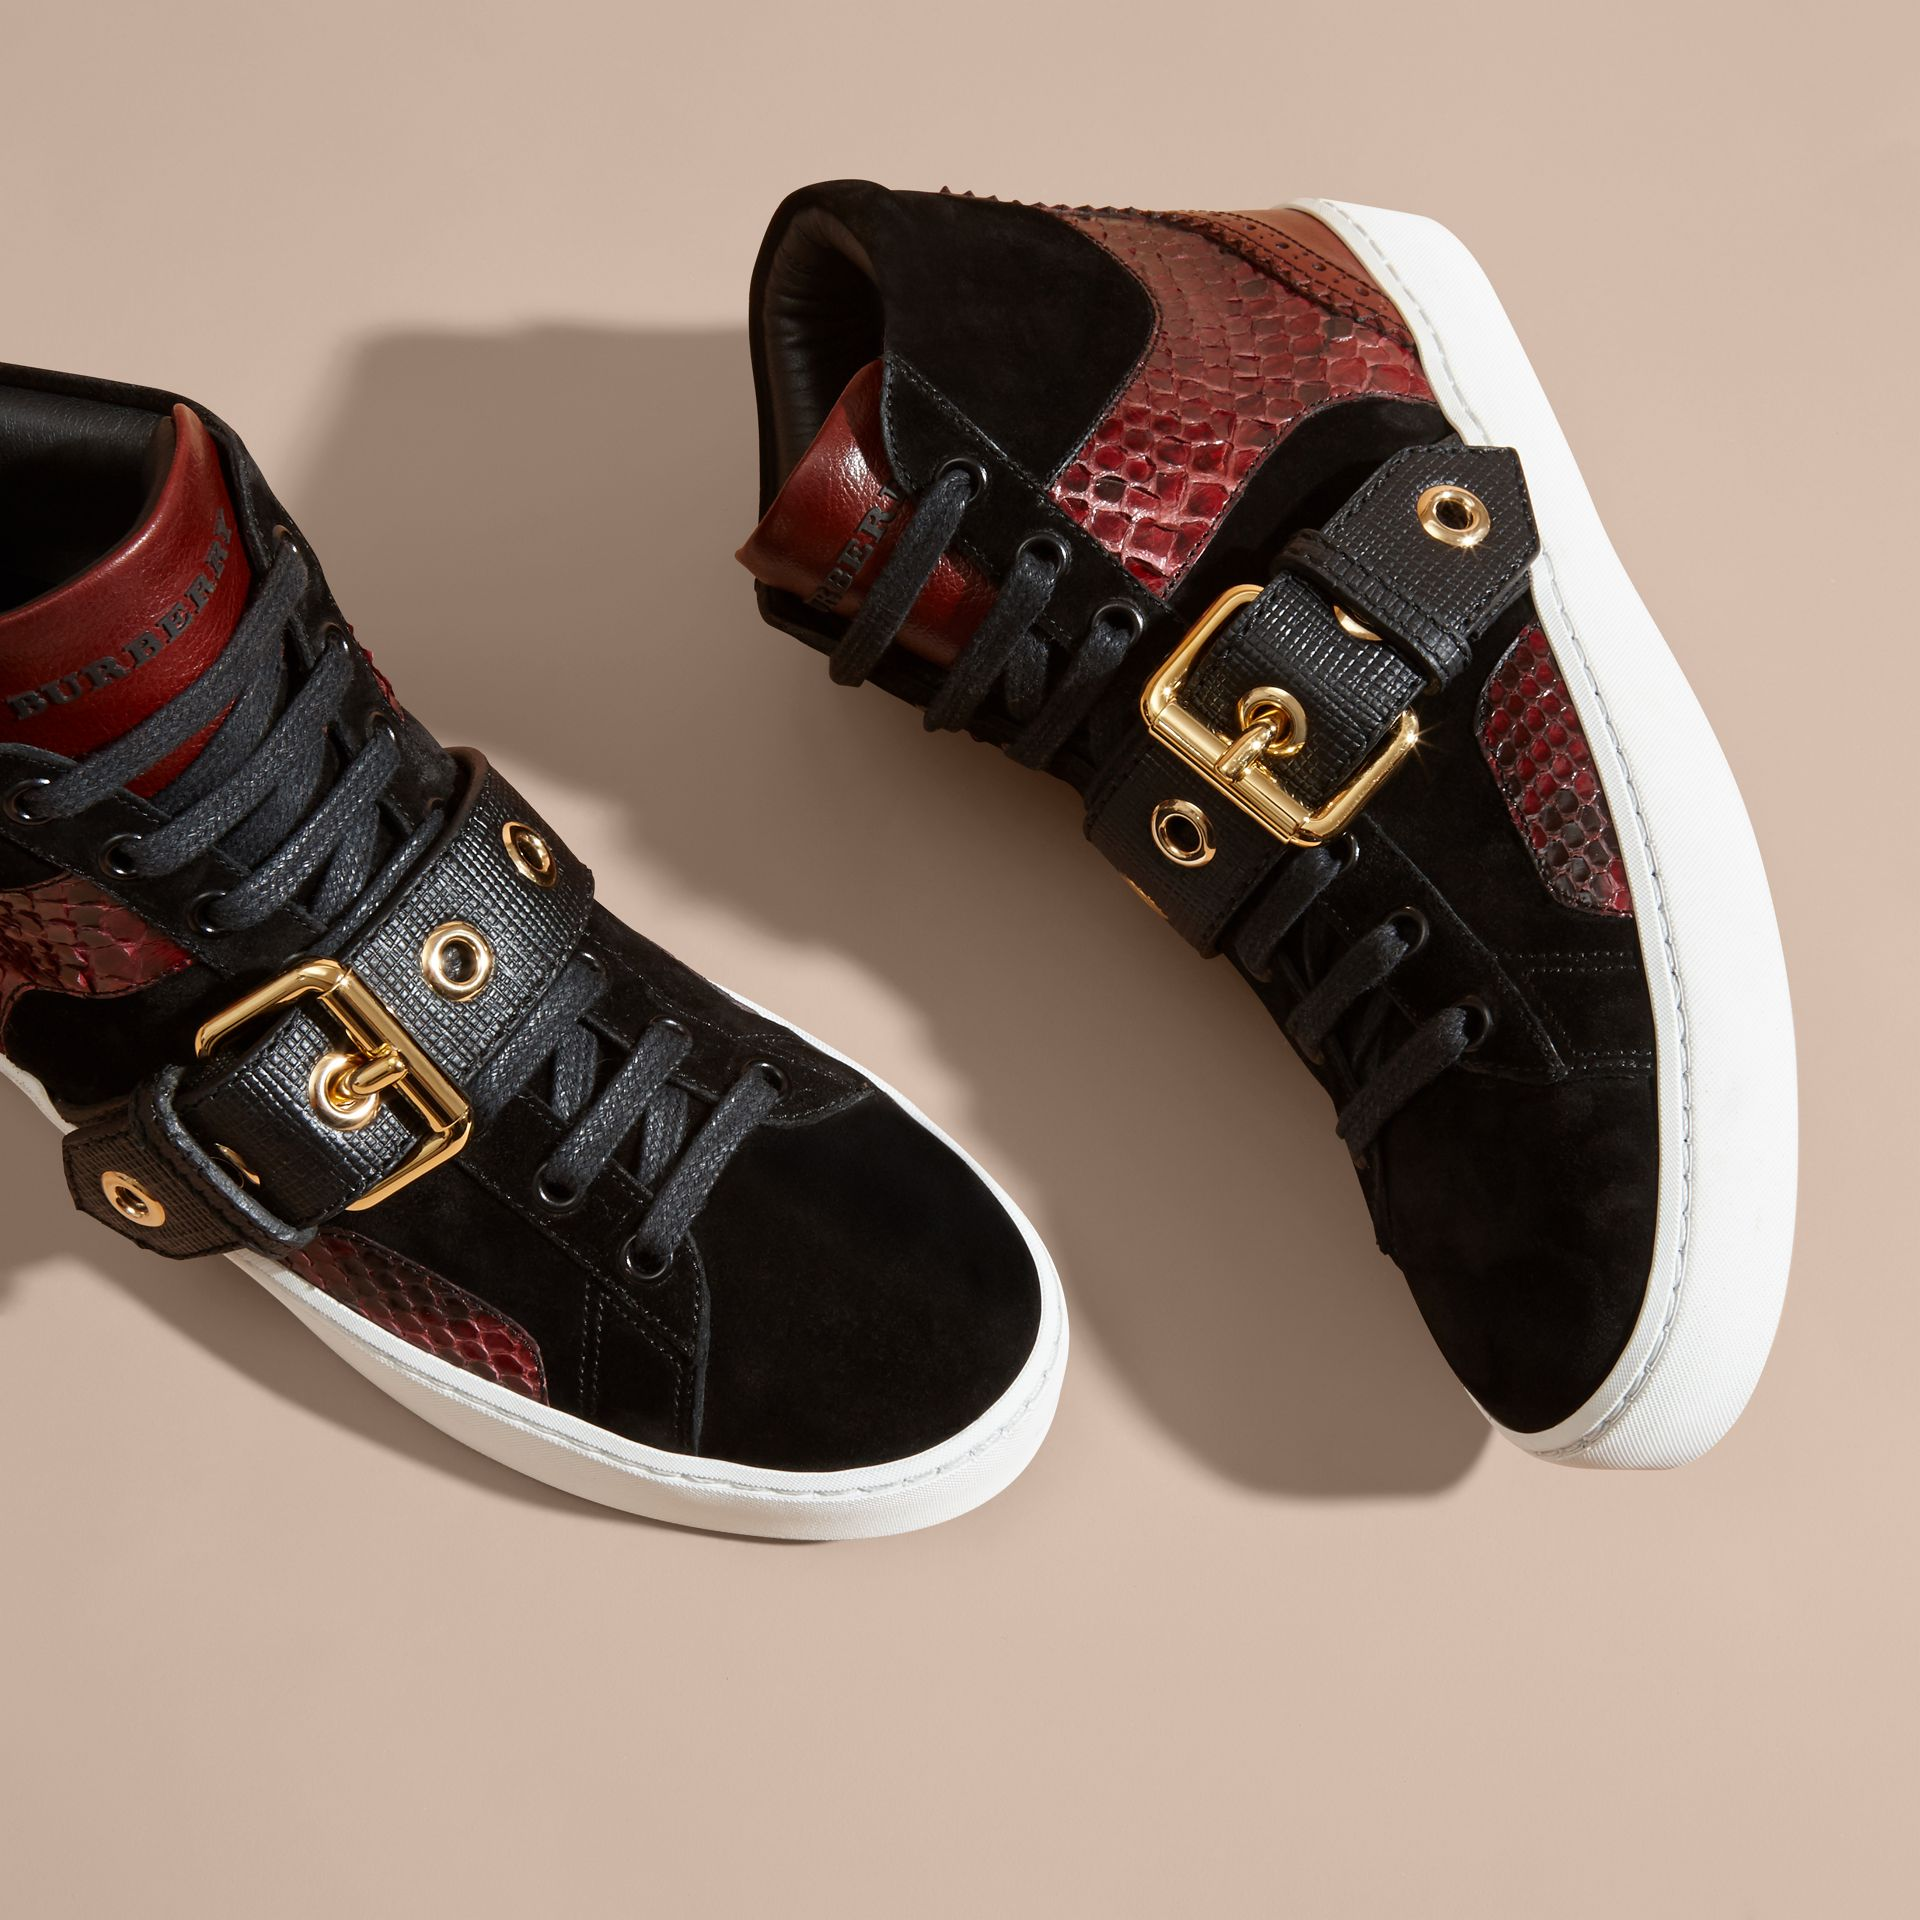 Buckle Detail Leather and Snakeskin High-top Trainers Bordeaux - gallery image 3